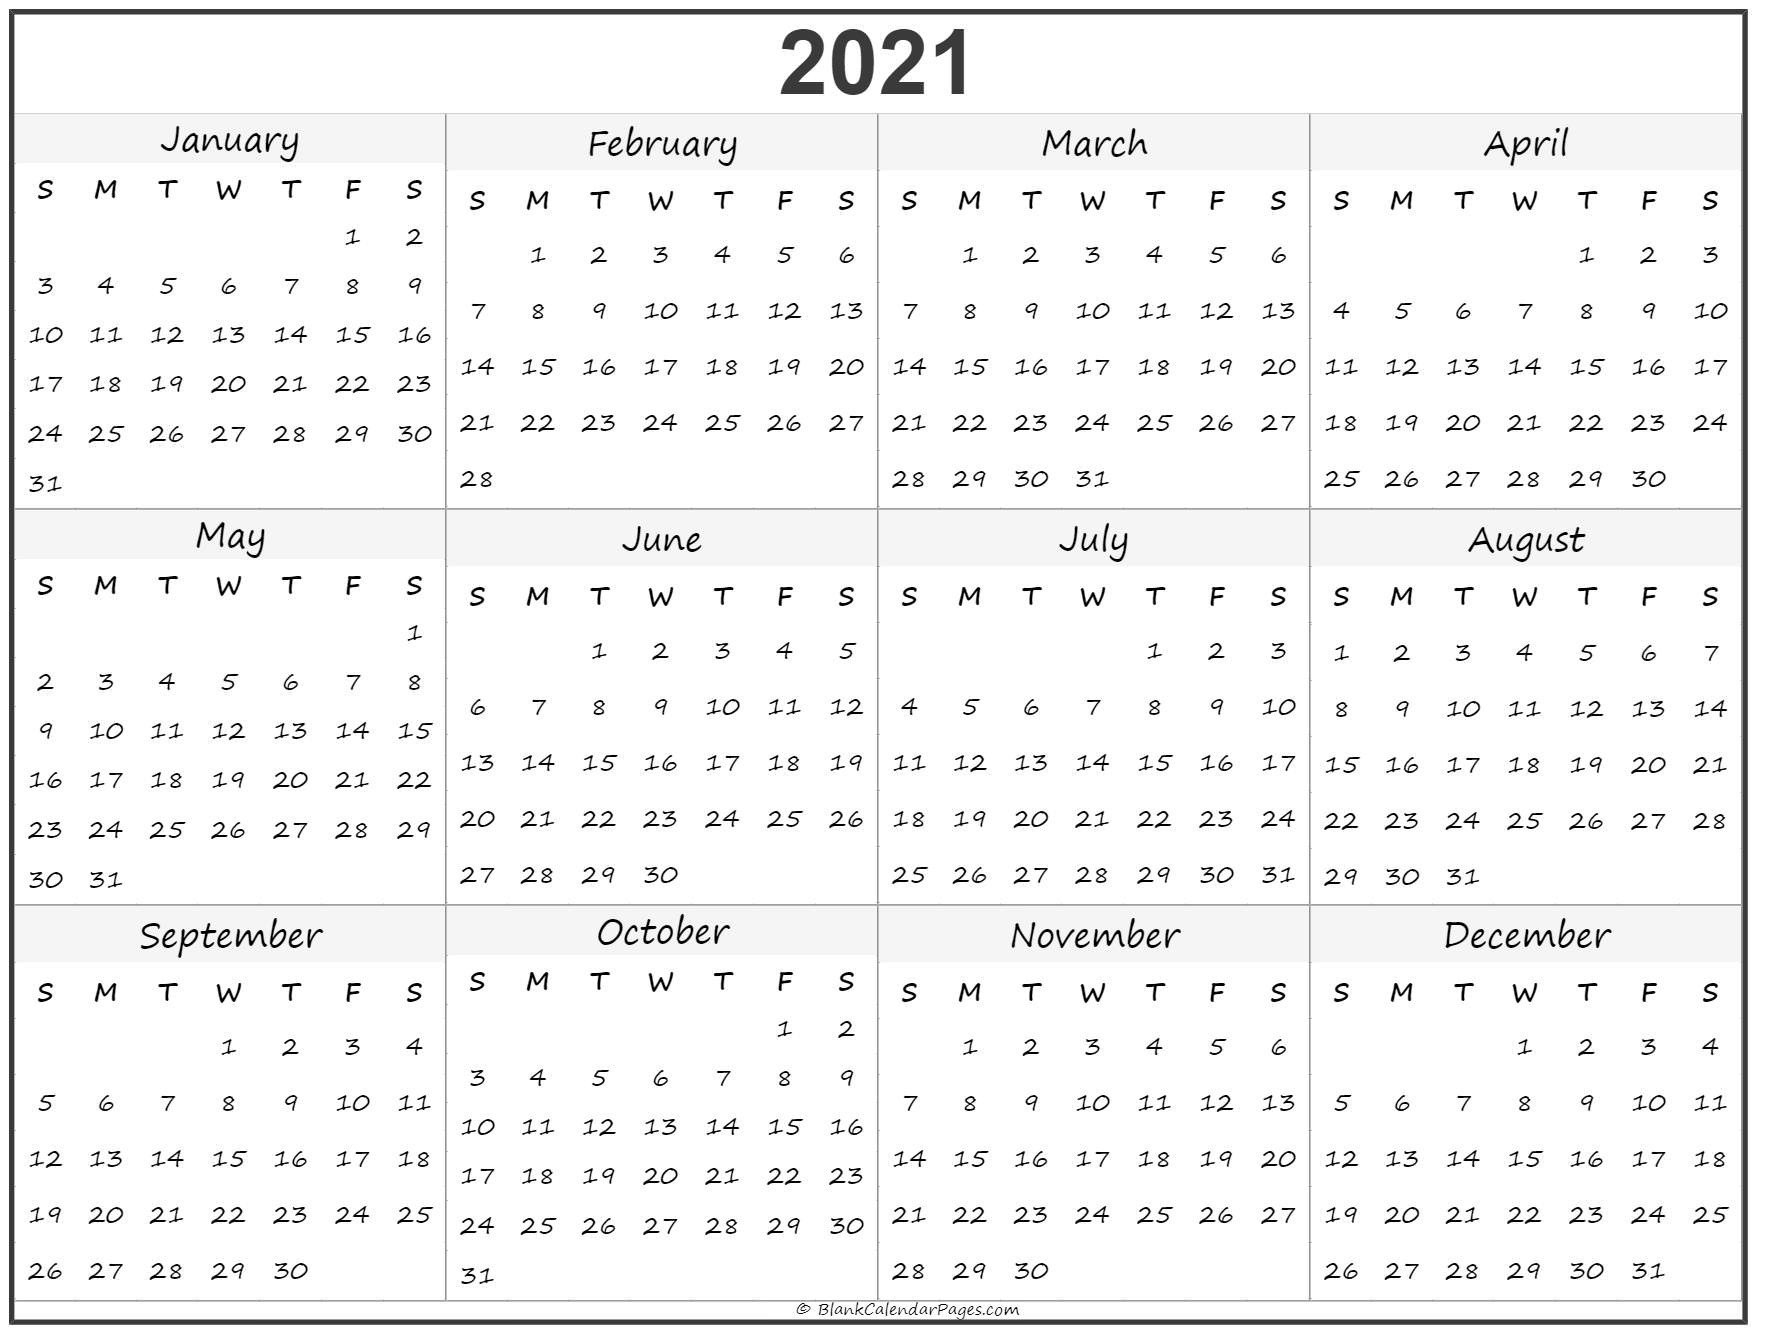 Calendar To Print 2021 Free All Months | Free Printable Calendar Monthly with 2021 Calendar With Date Boxes